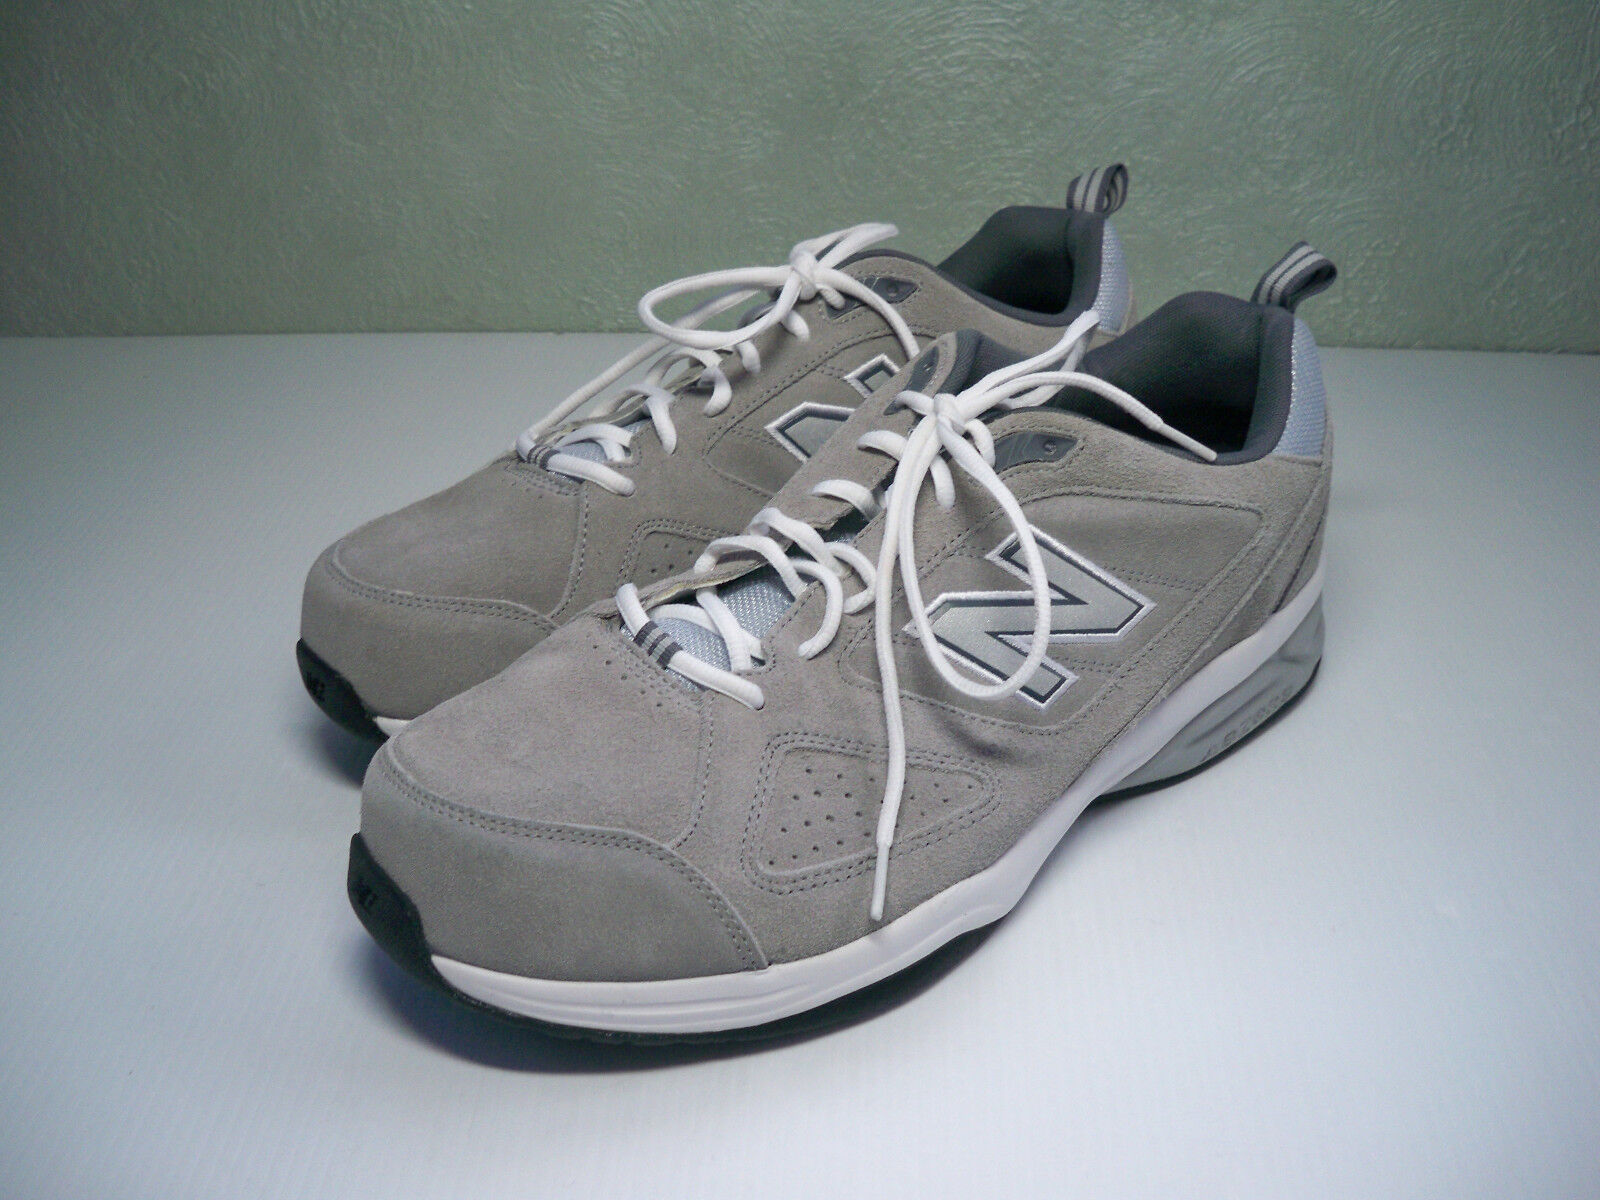 NEW New Balance 623v3 Grey Suede MX623GS3 Comfort Running sneakers mens SZ 15 4E